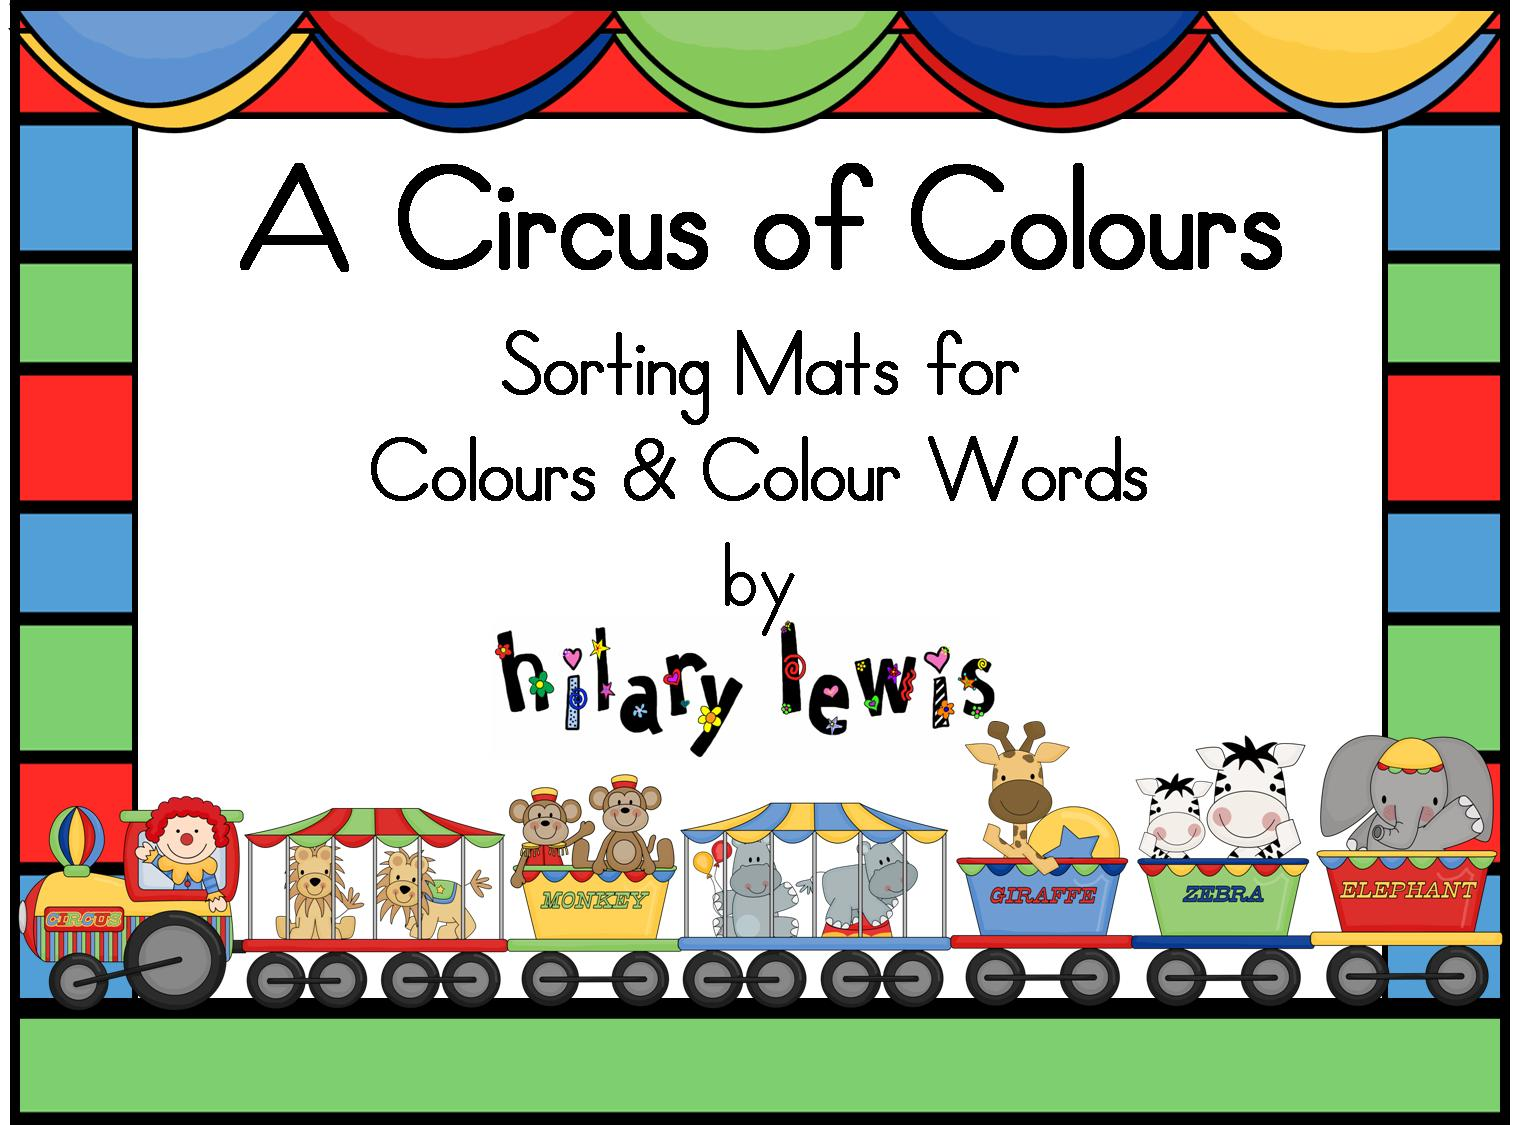 Colours and Colour Words - Sorting Mats